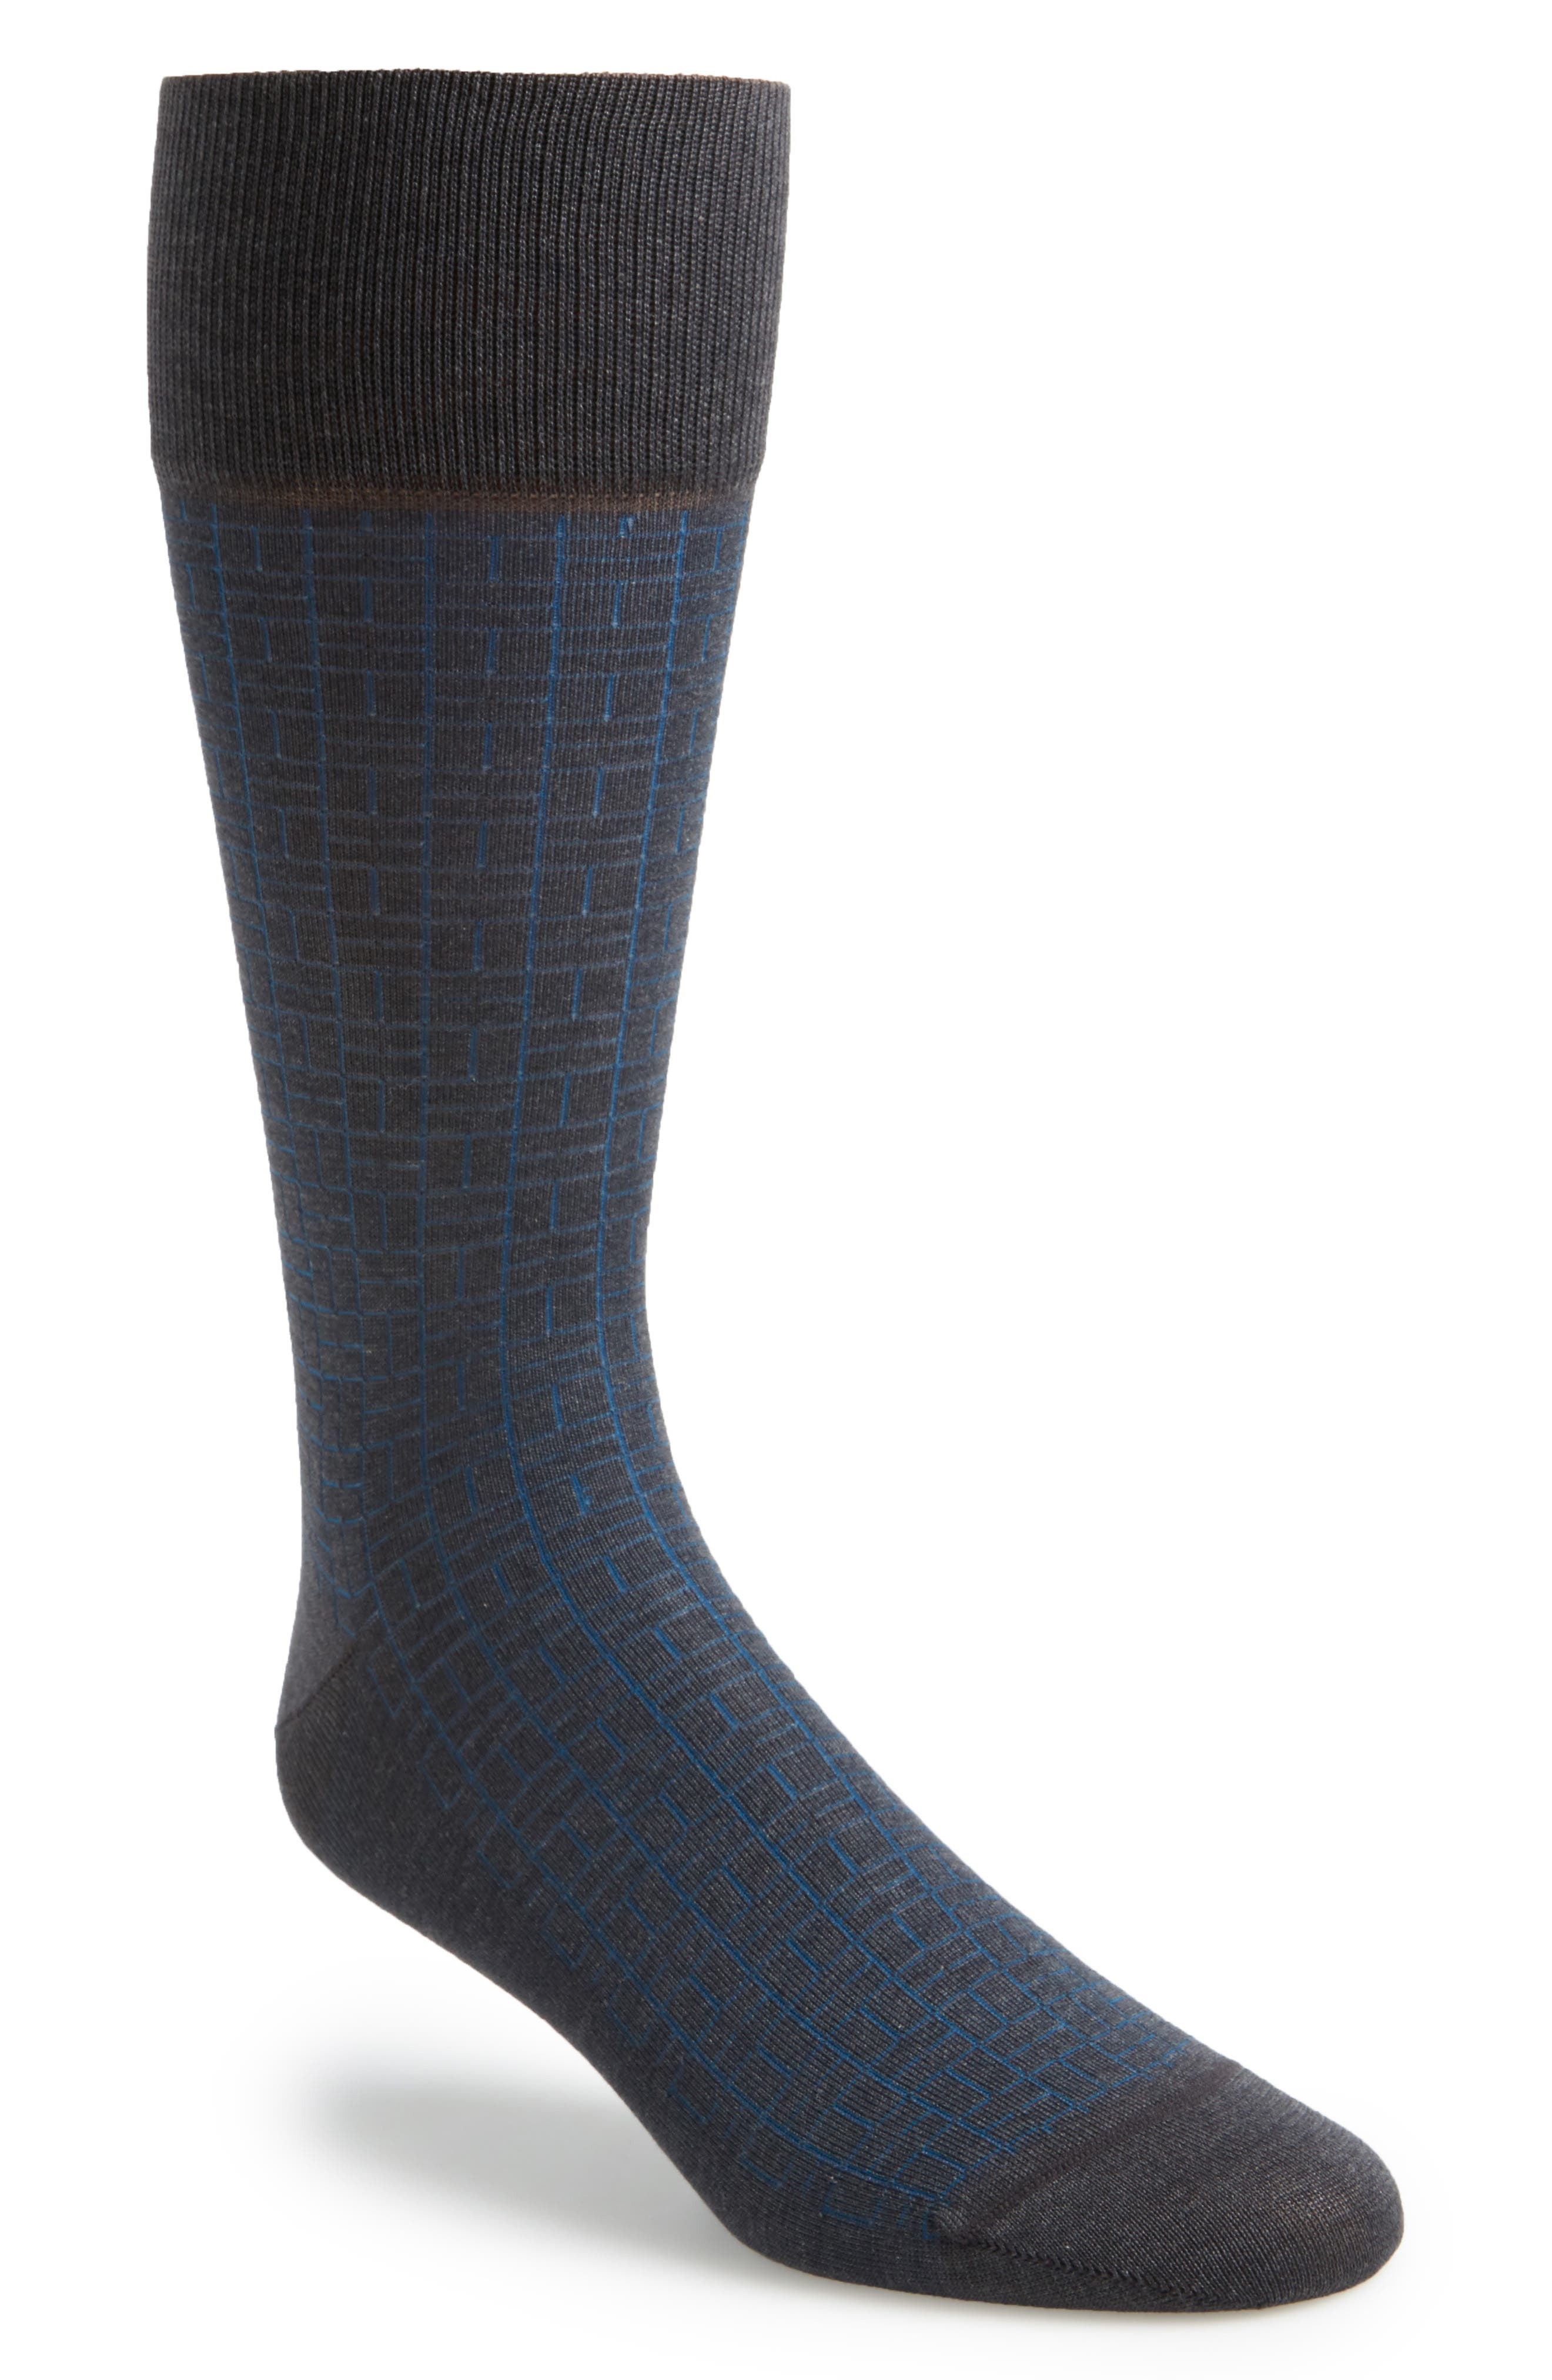 Domino Socks,                         Main,                         color, Charcoal Heather